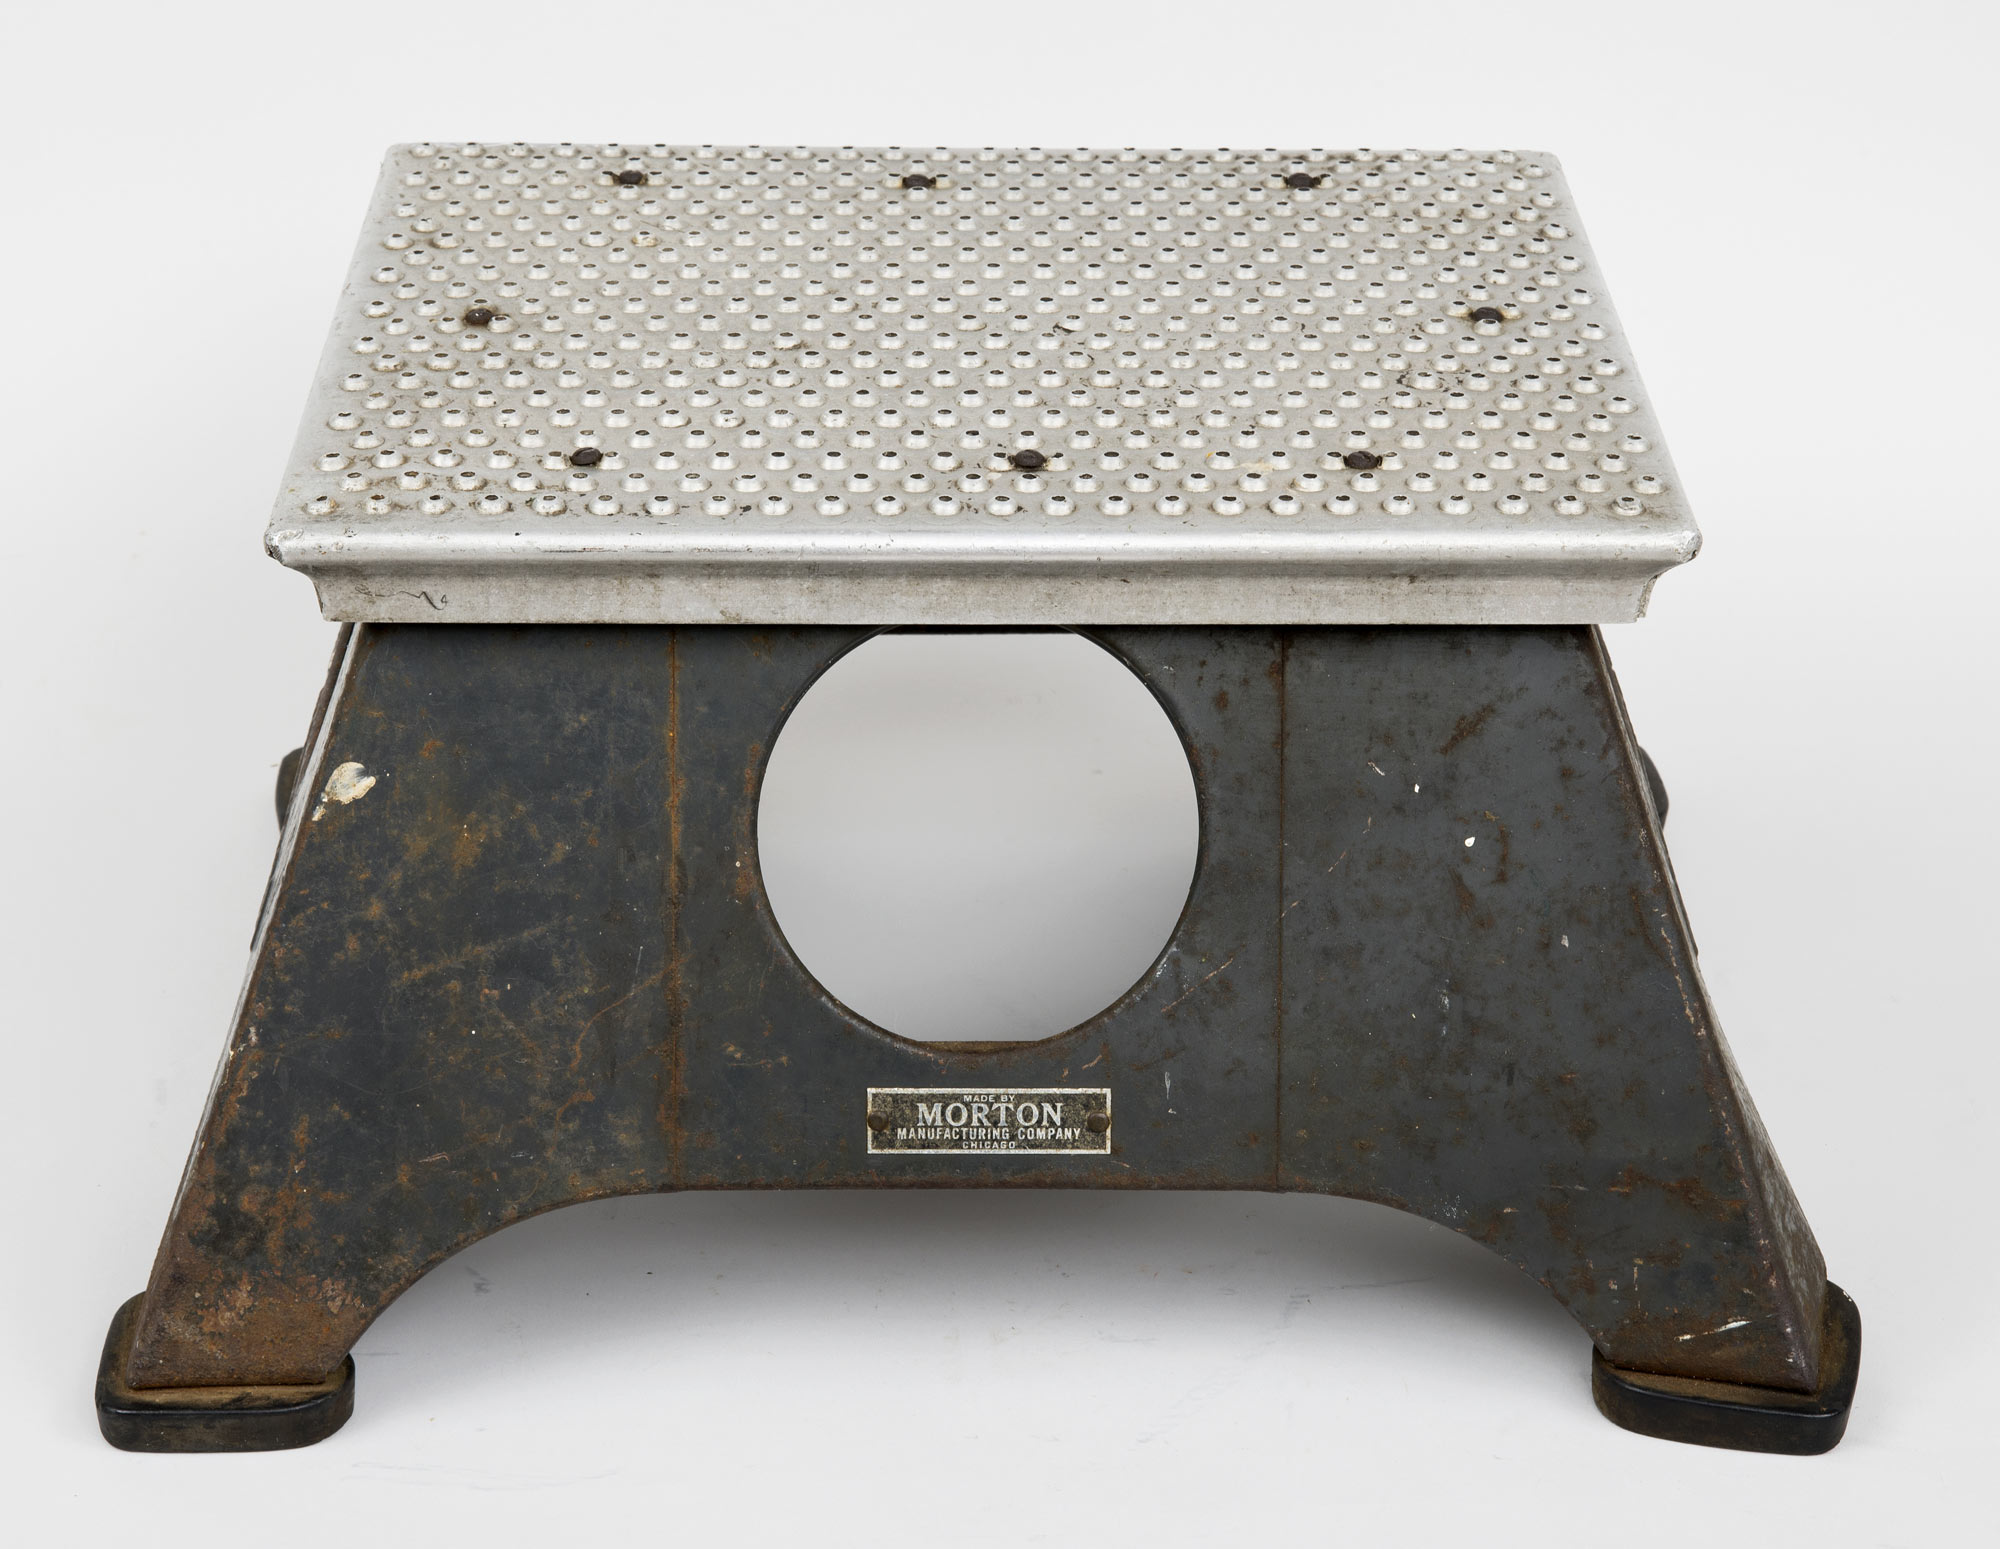 ... New York Central Train Step Stool ... & New York Central Train Antique Step Stool | 1940u0027s Steel Step Stool islam-shia.org